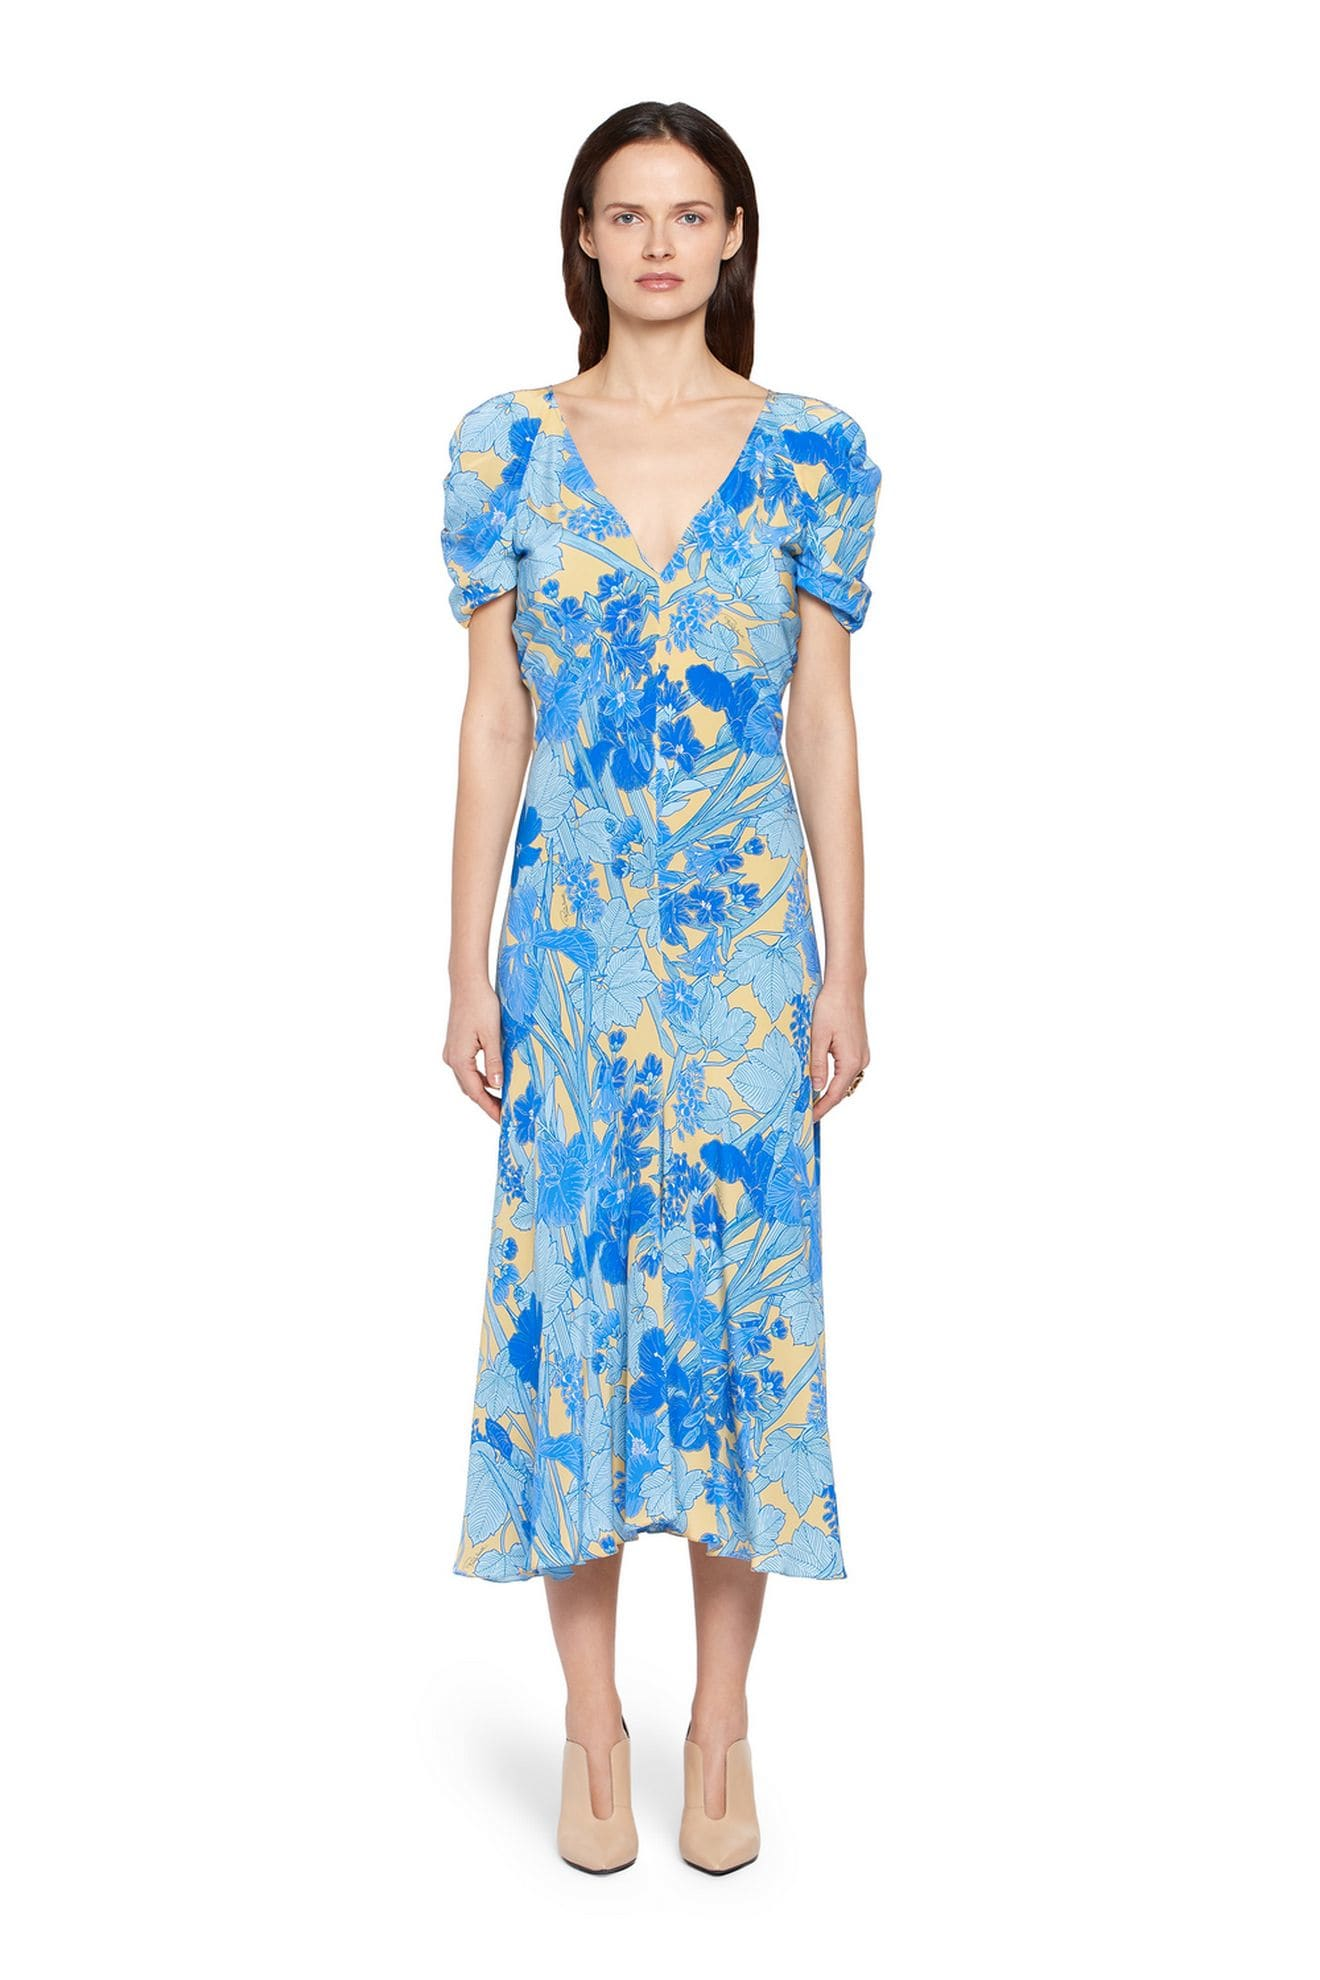 roberto-cavalli-summer-garden-print-silk-dress_12918552_13763960_1320